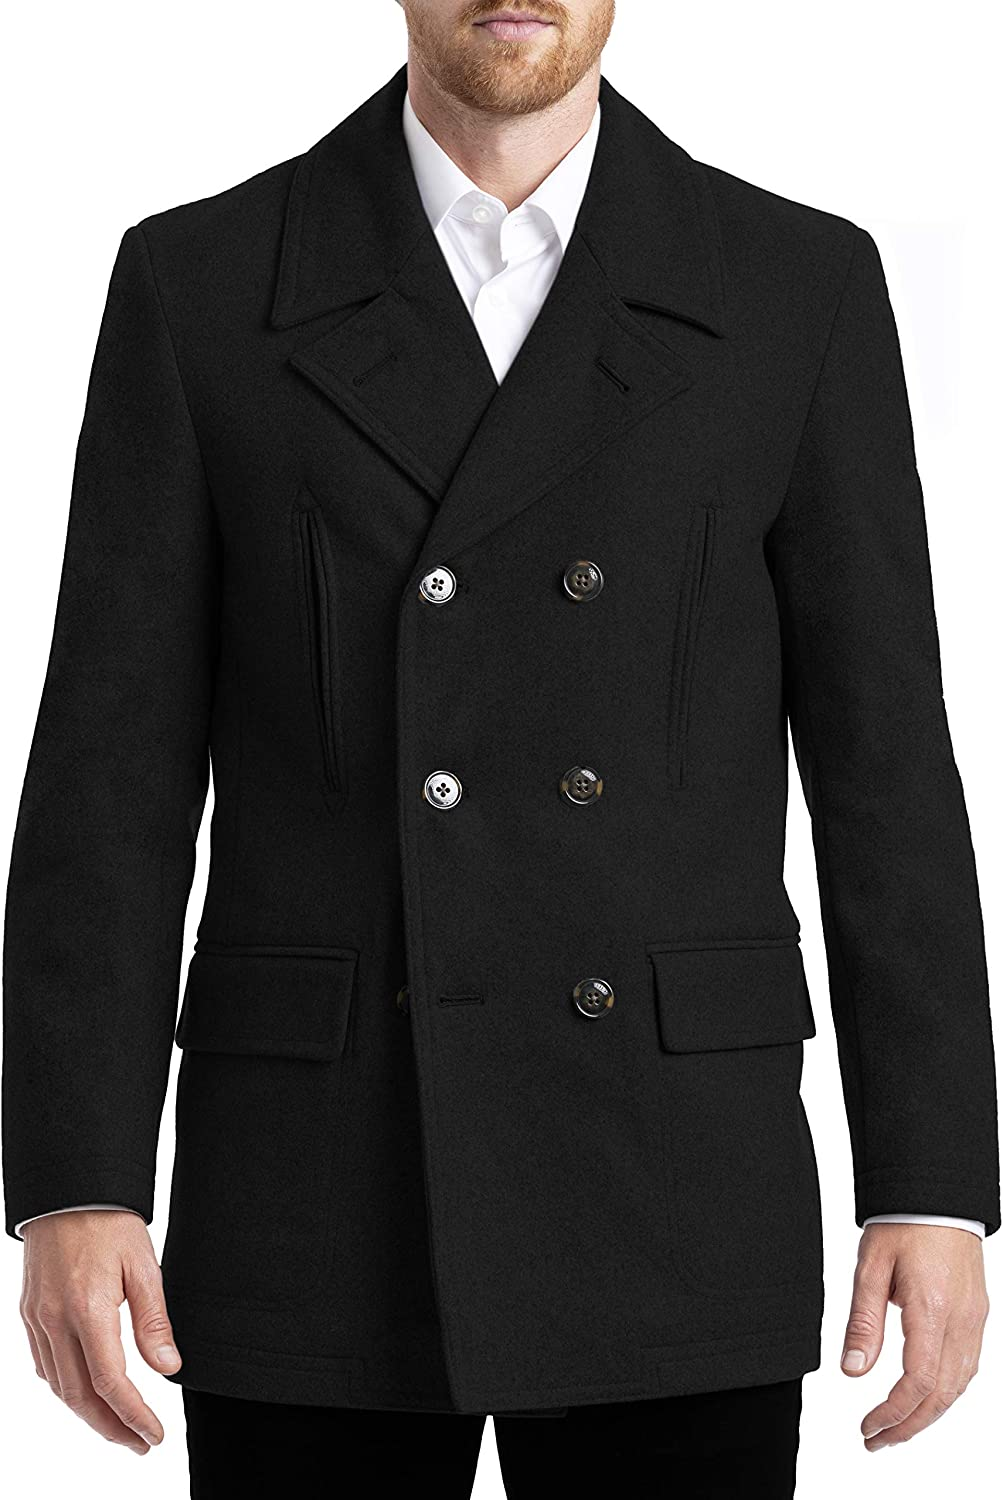 Super special price Chaps mens All-american Peacoat Credence Style Authentic